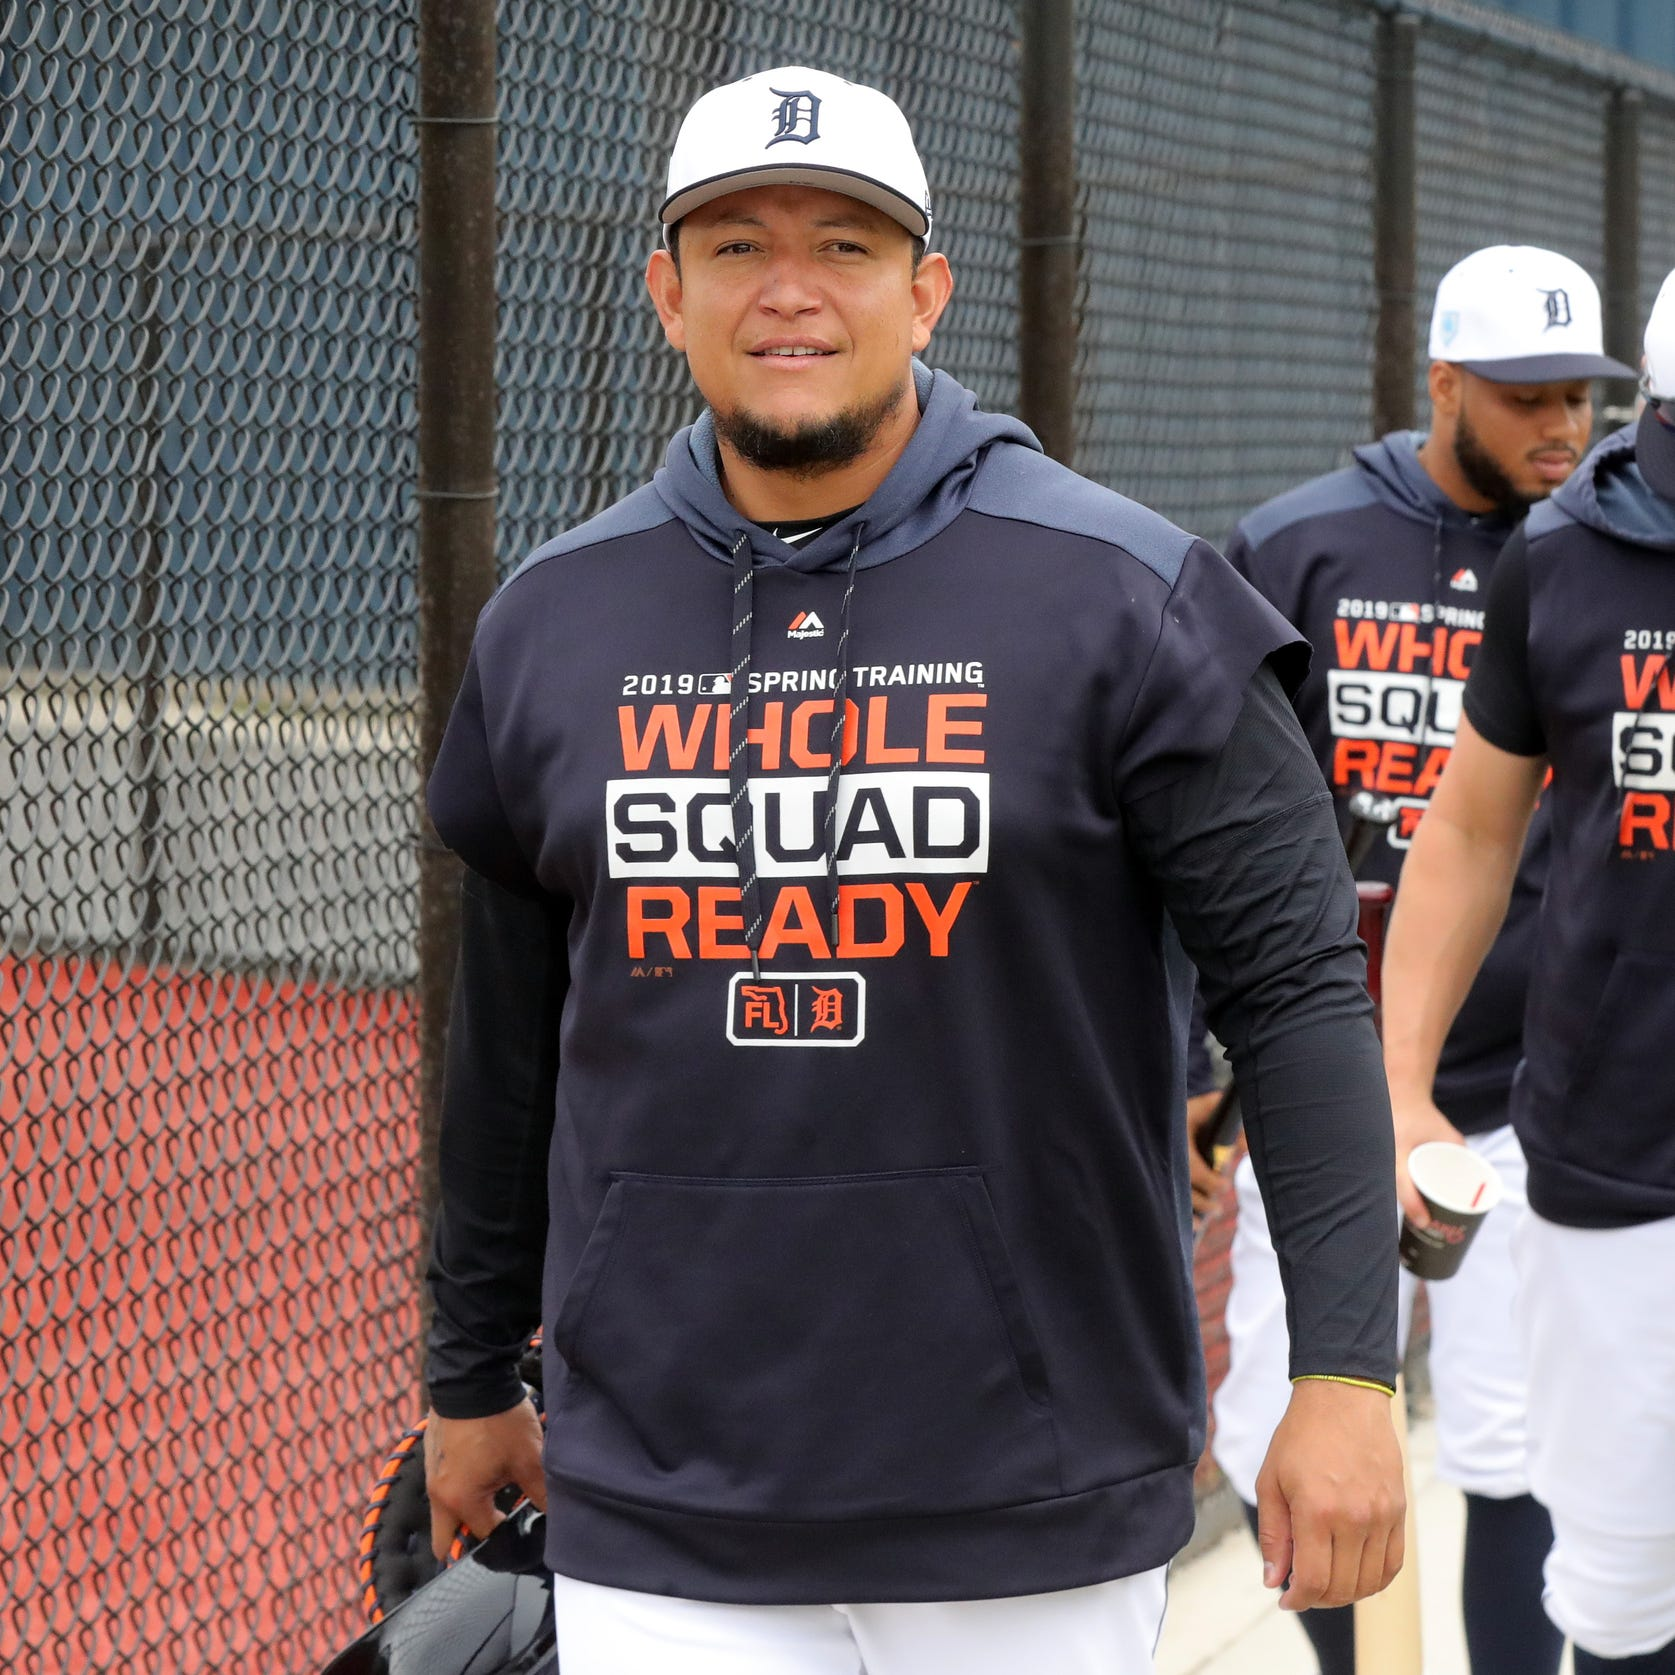 Detroit Tigers' Miguel Cabrera reports for duty: 'I feel I can do my job this year'